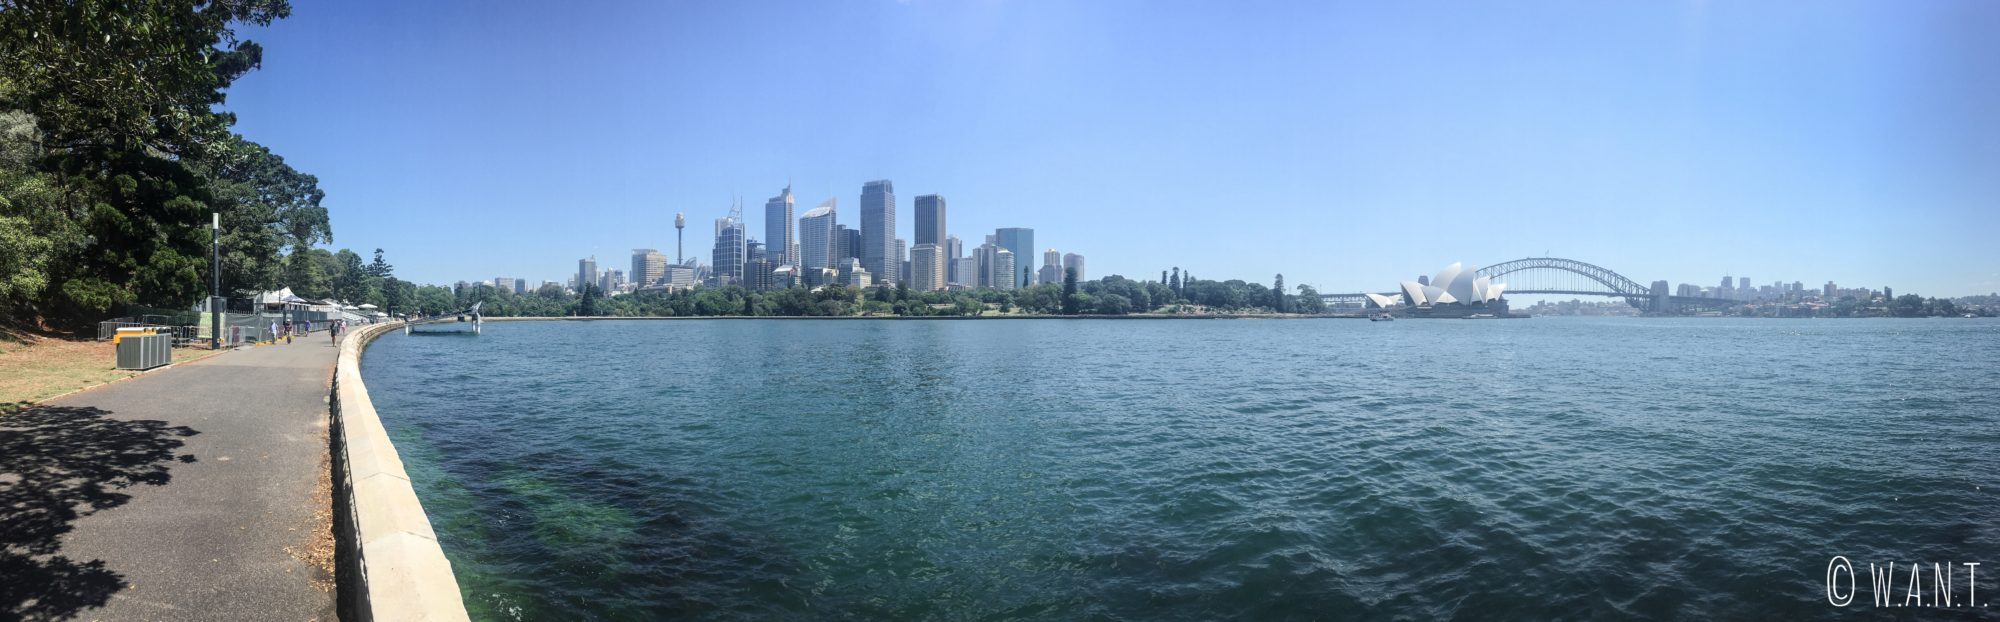 Panorama depuis Macquarie's point à Sydney